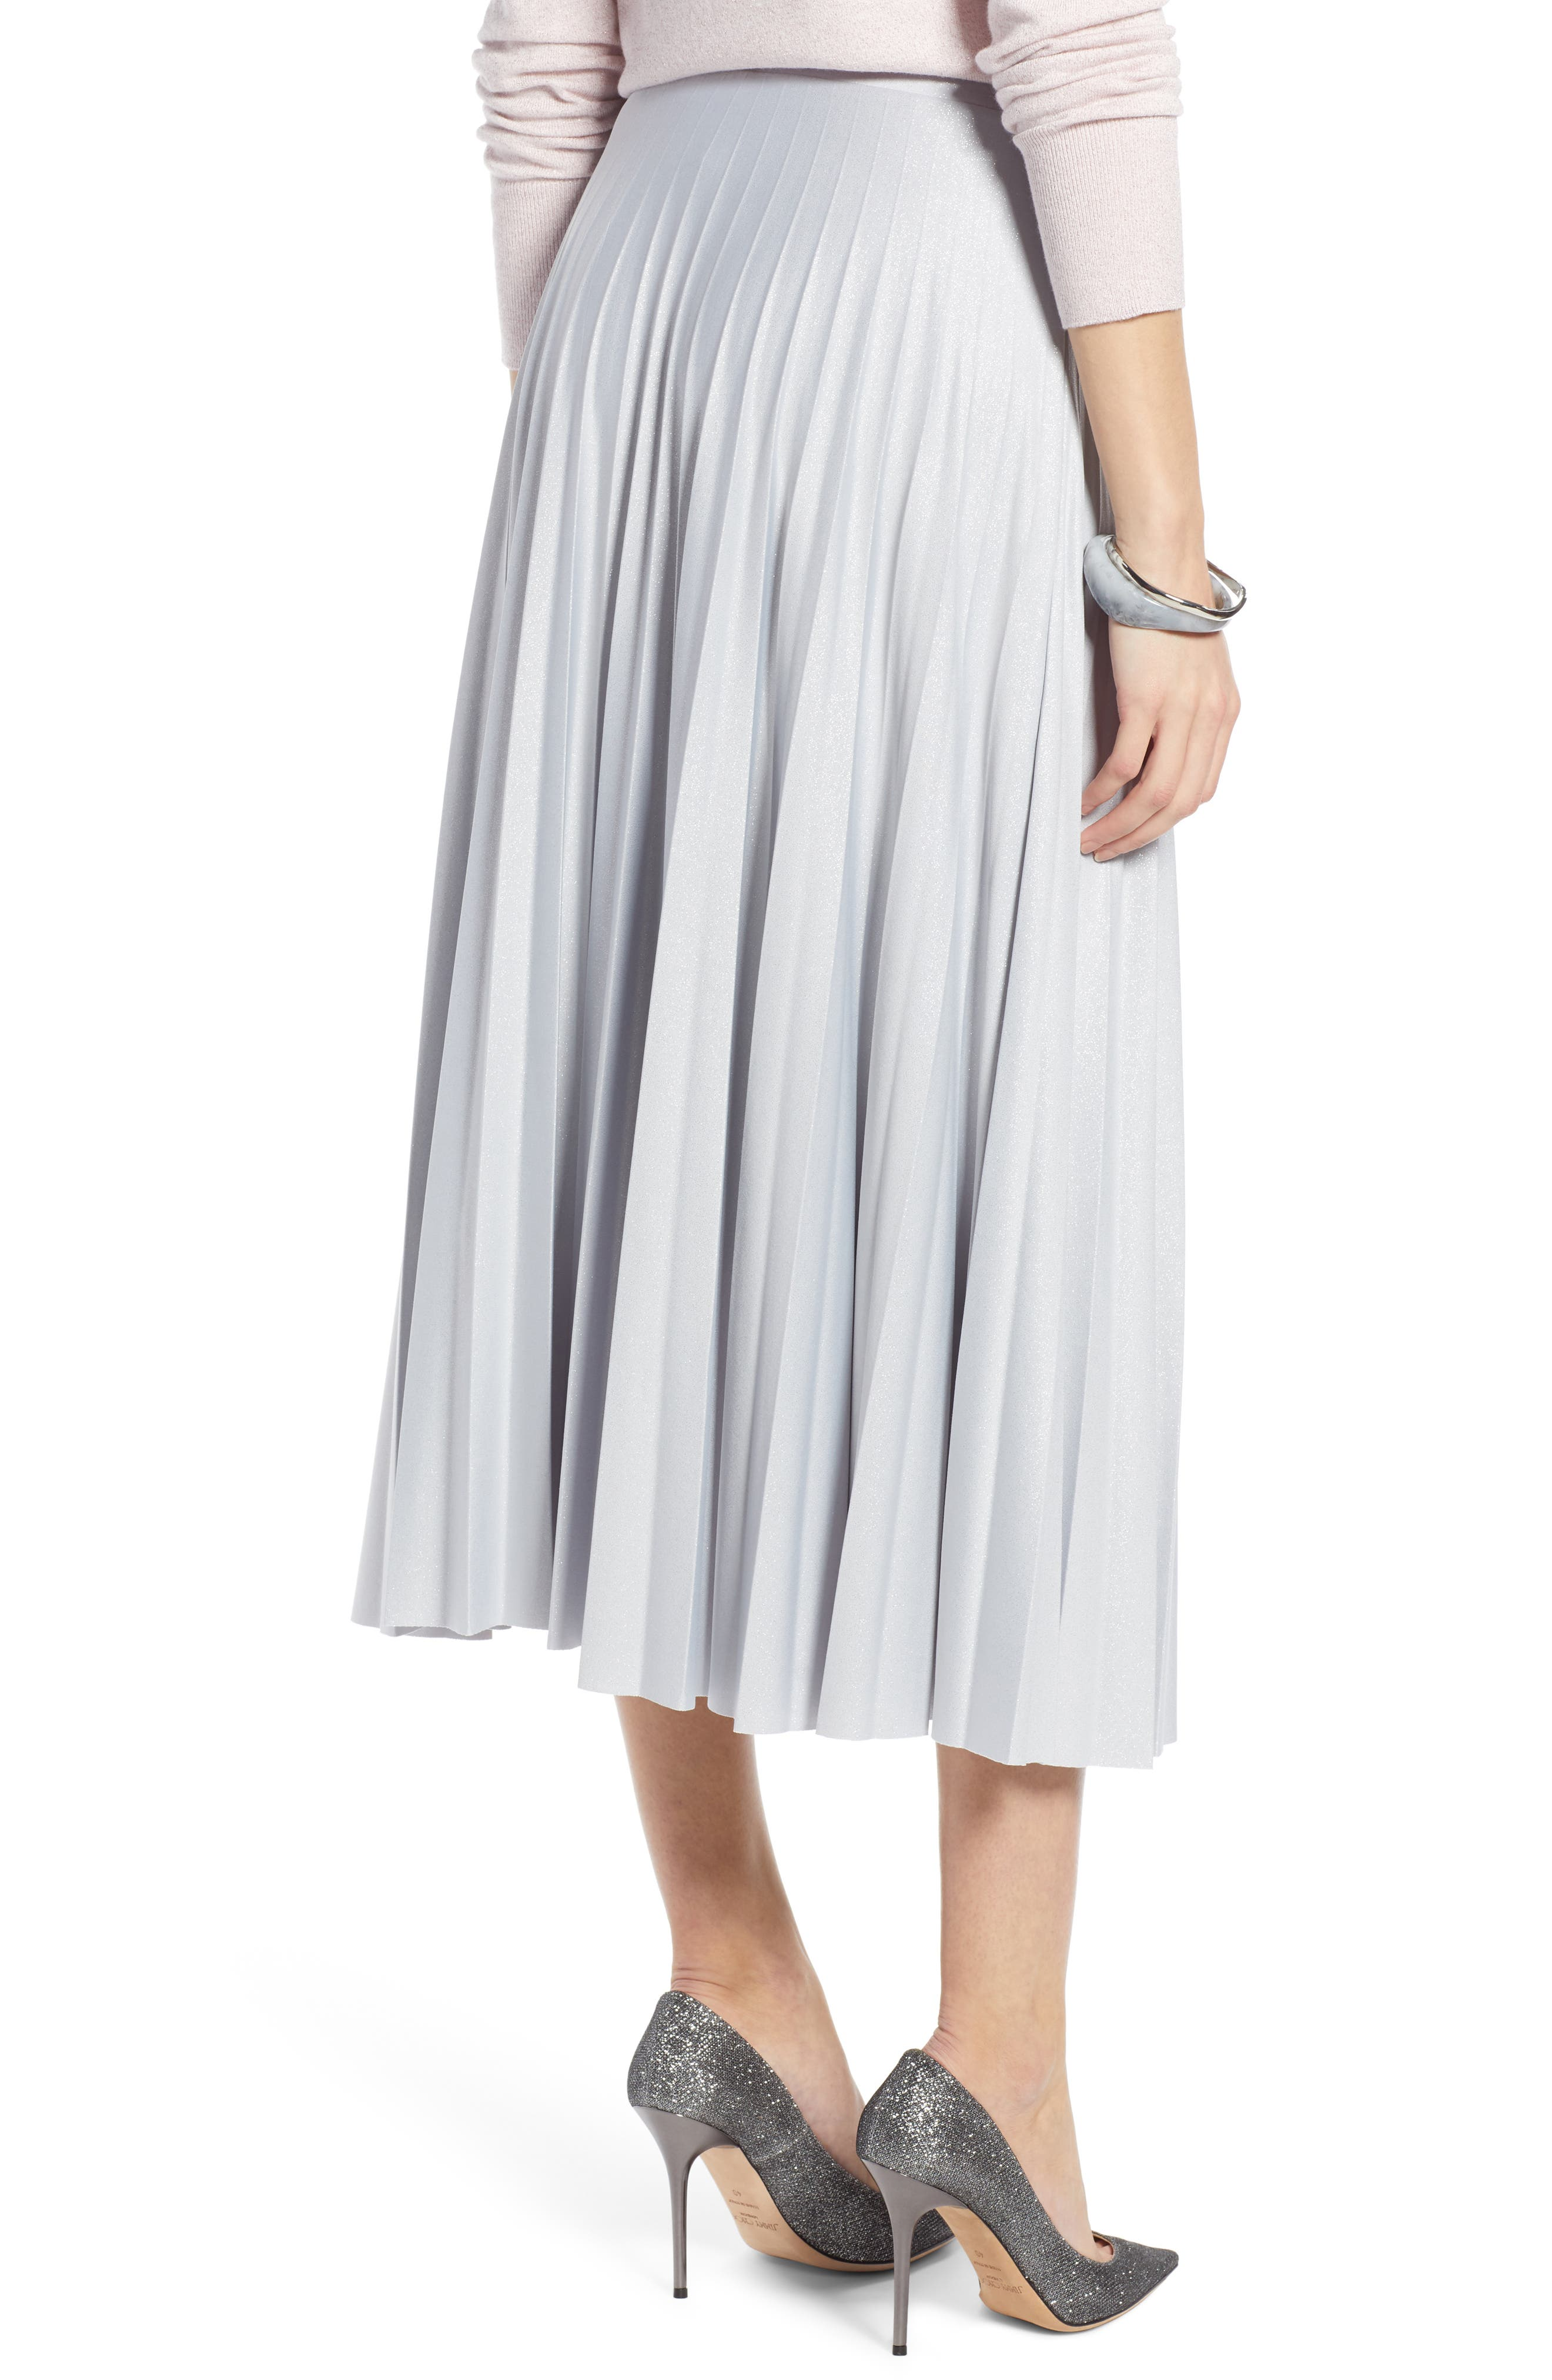 Metallic Pleat Midi Skirt,                             Alternate thumbnail 2, color,                             GREY- SILVER FOIL